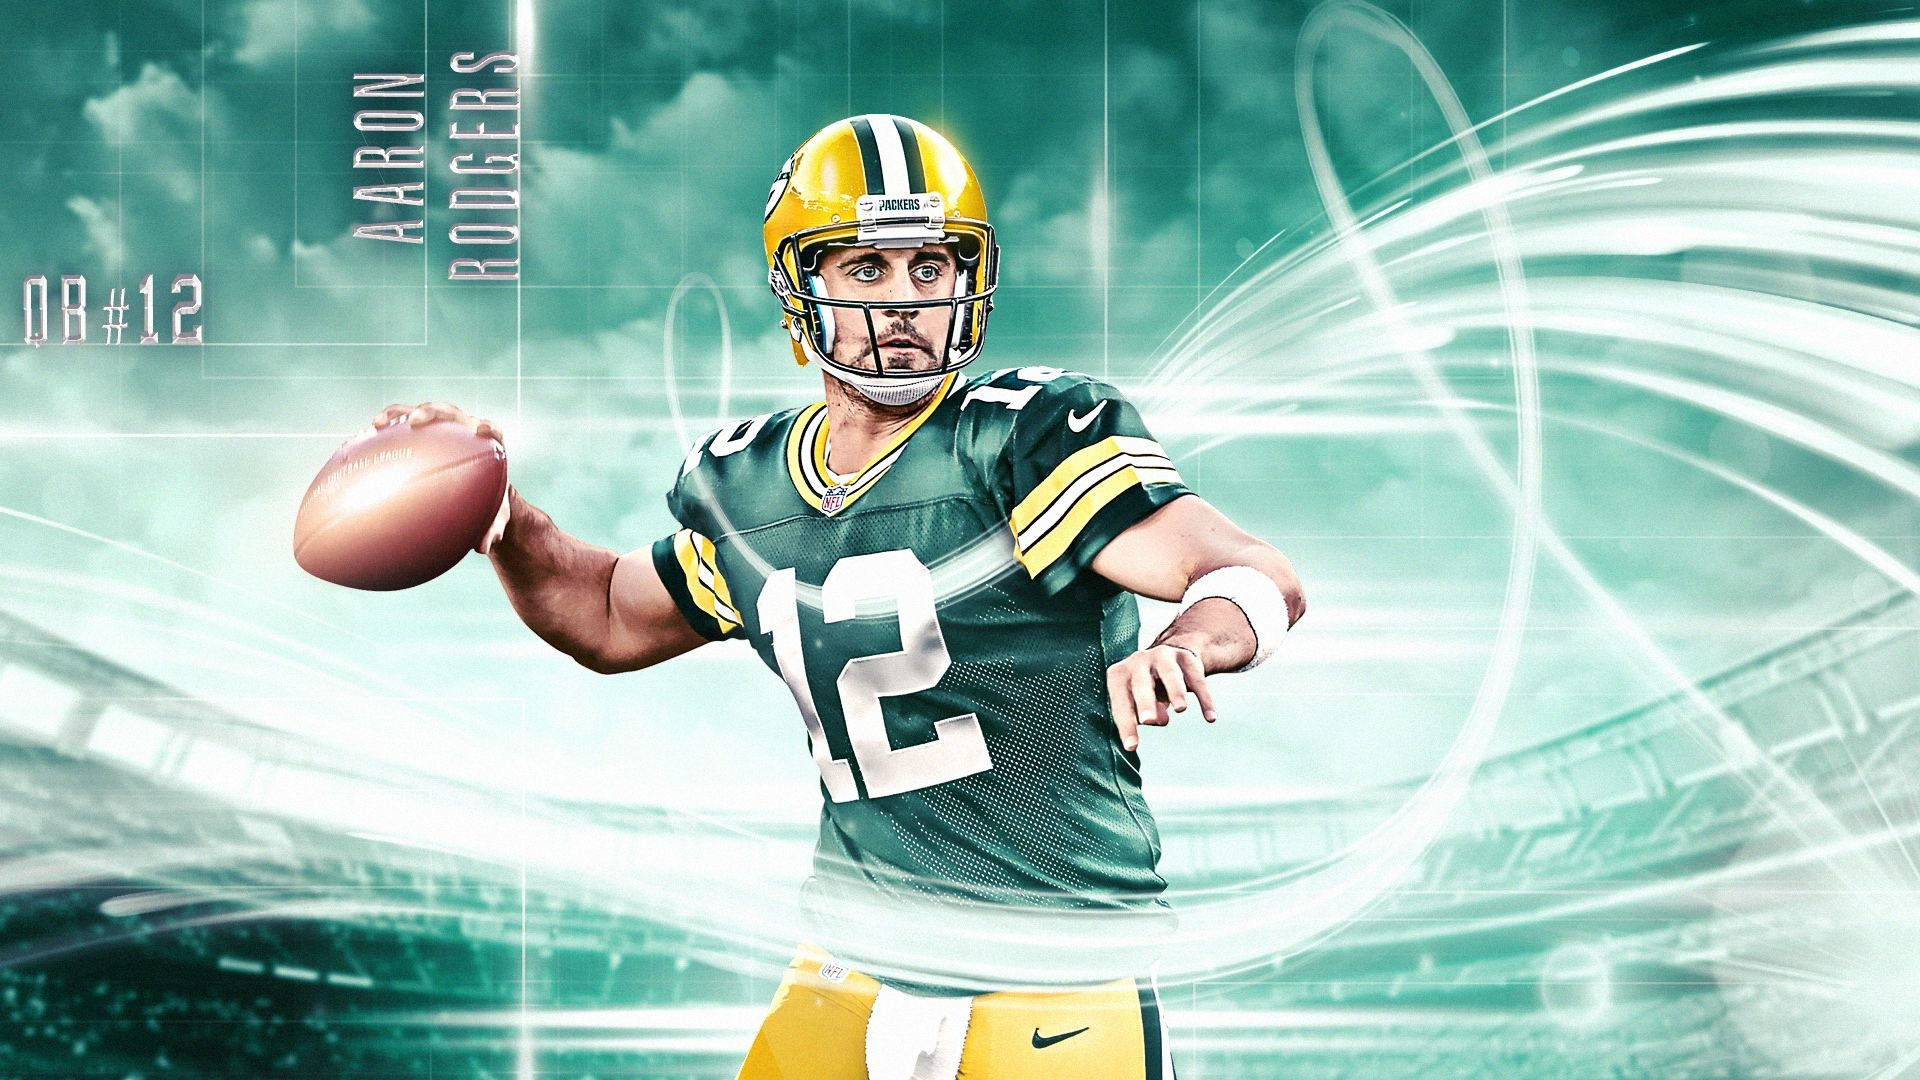 Get the latest updated stats for Green Bay Packers quarterback Aaron Rodgers on ESPNcom